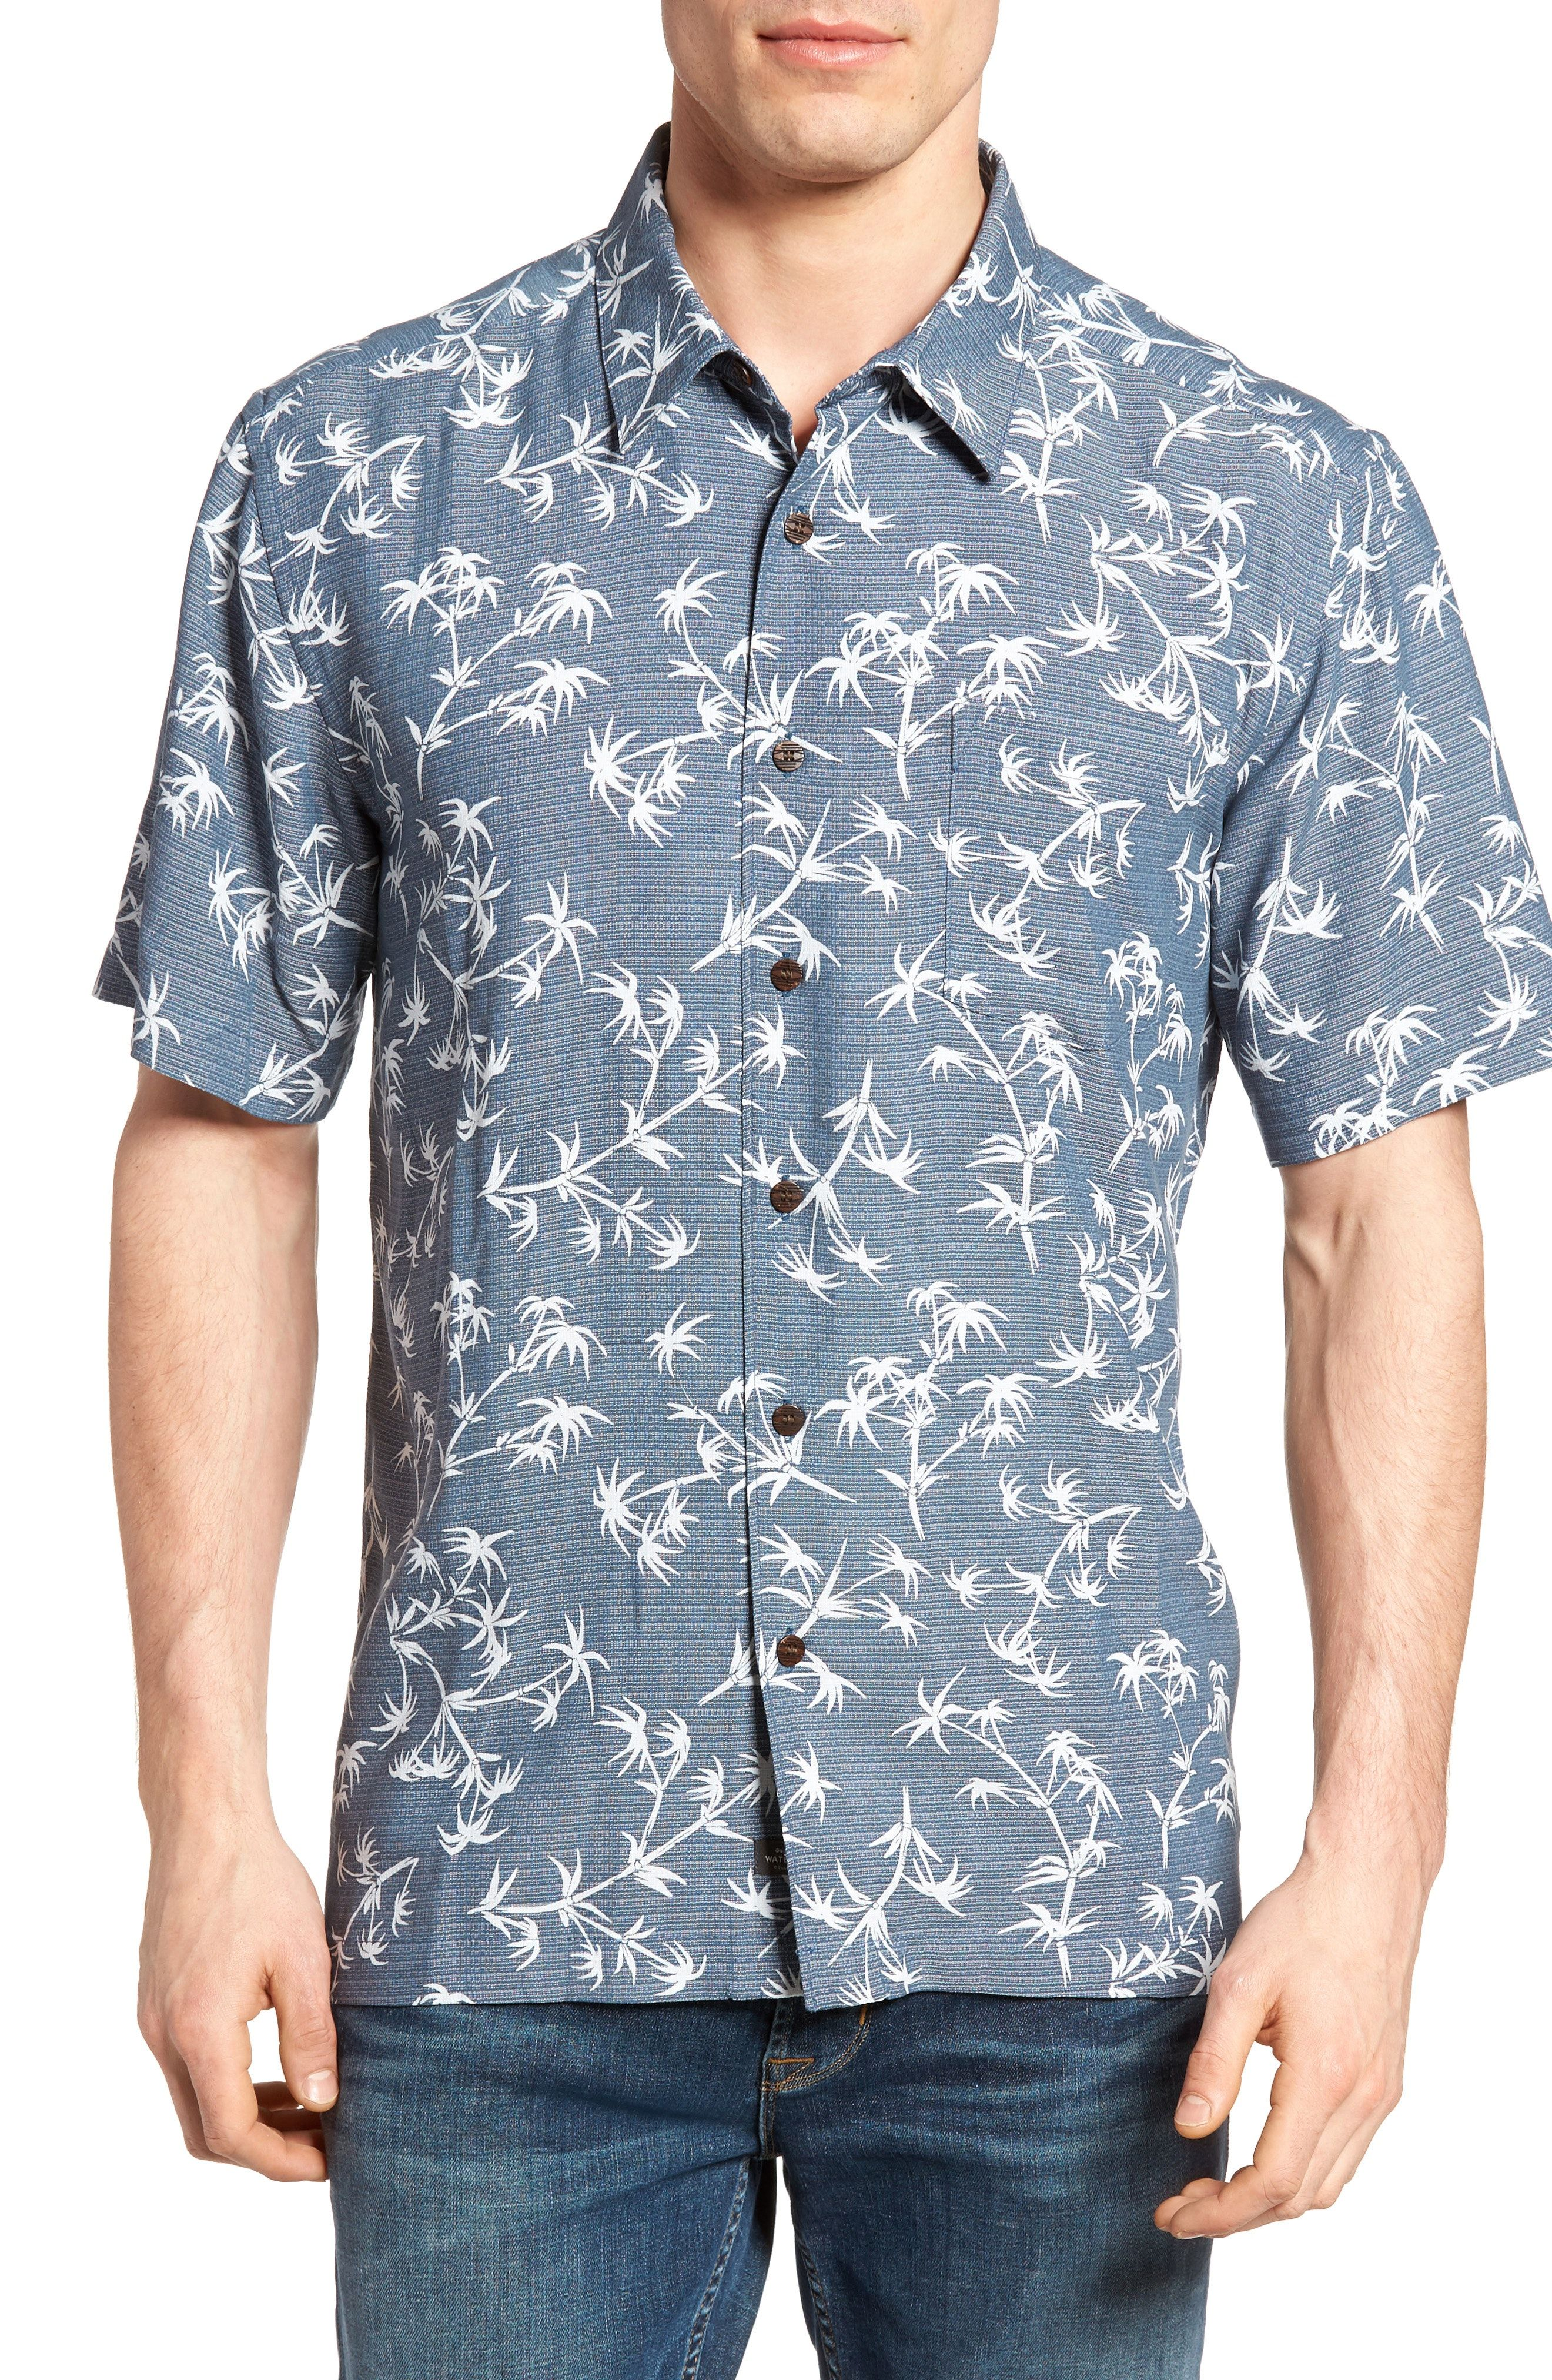 New Quiksilver Waterman Collection Skinny Palms Print Sport Shirt ... c7a4ae7e872